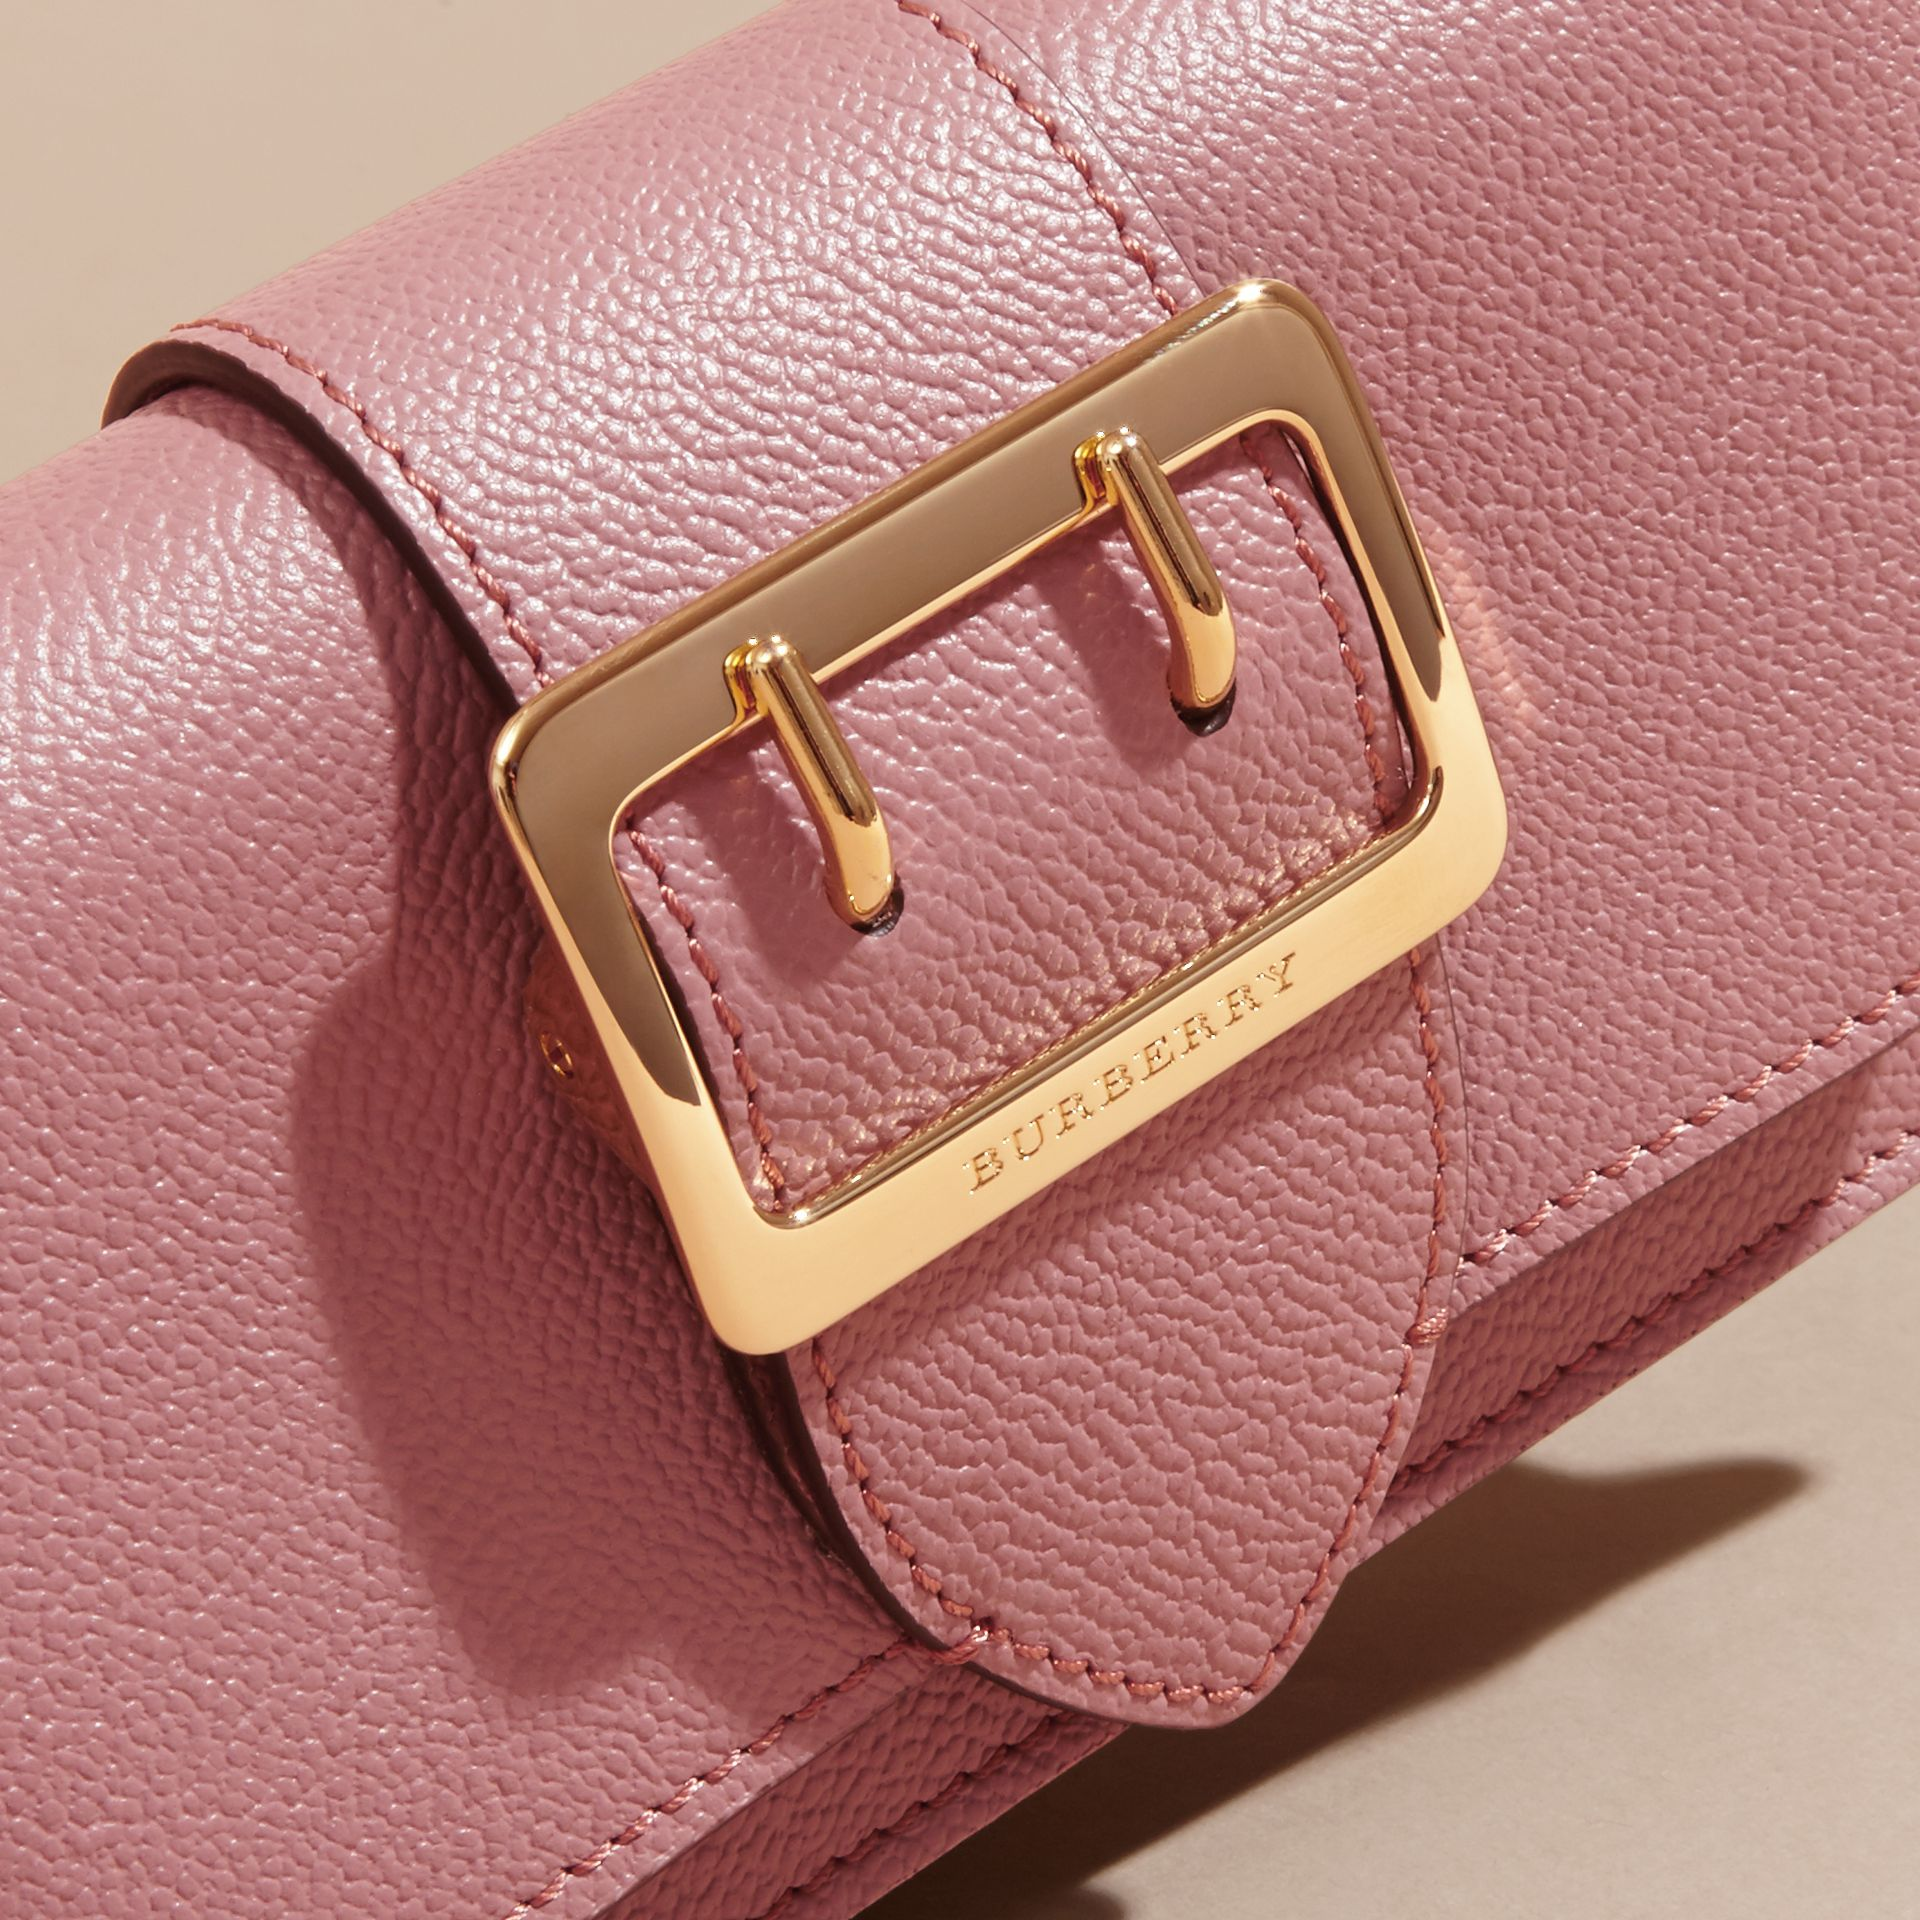 The Mini Buckle Bag in Grainy Leather in Dusty Pink - Women | Burberry Canada - gallery image 2